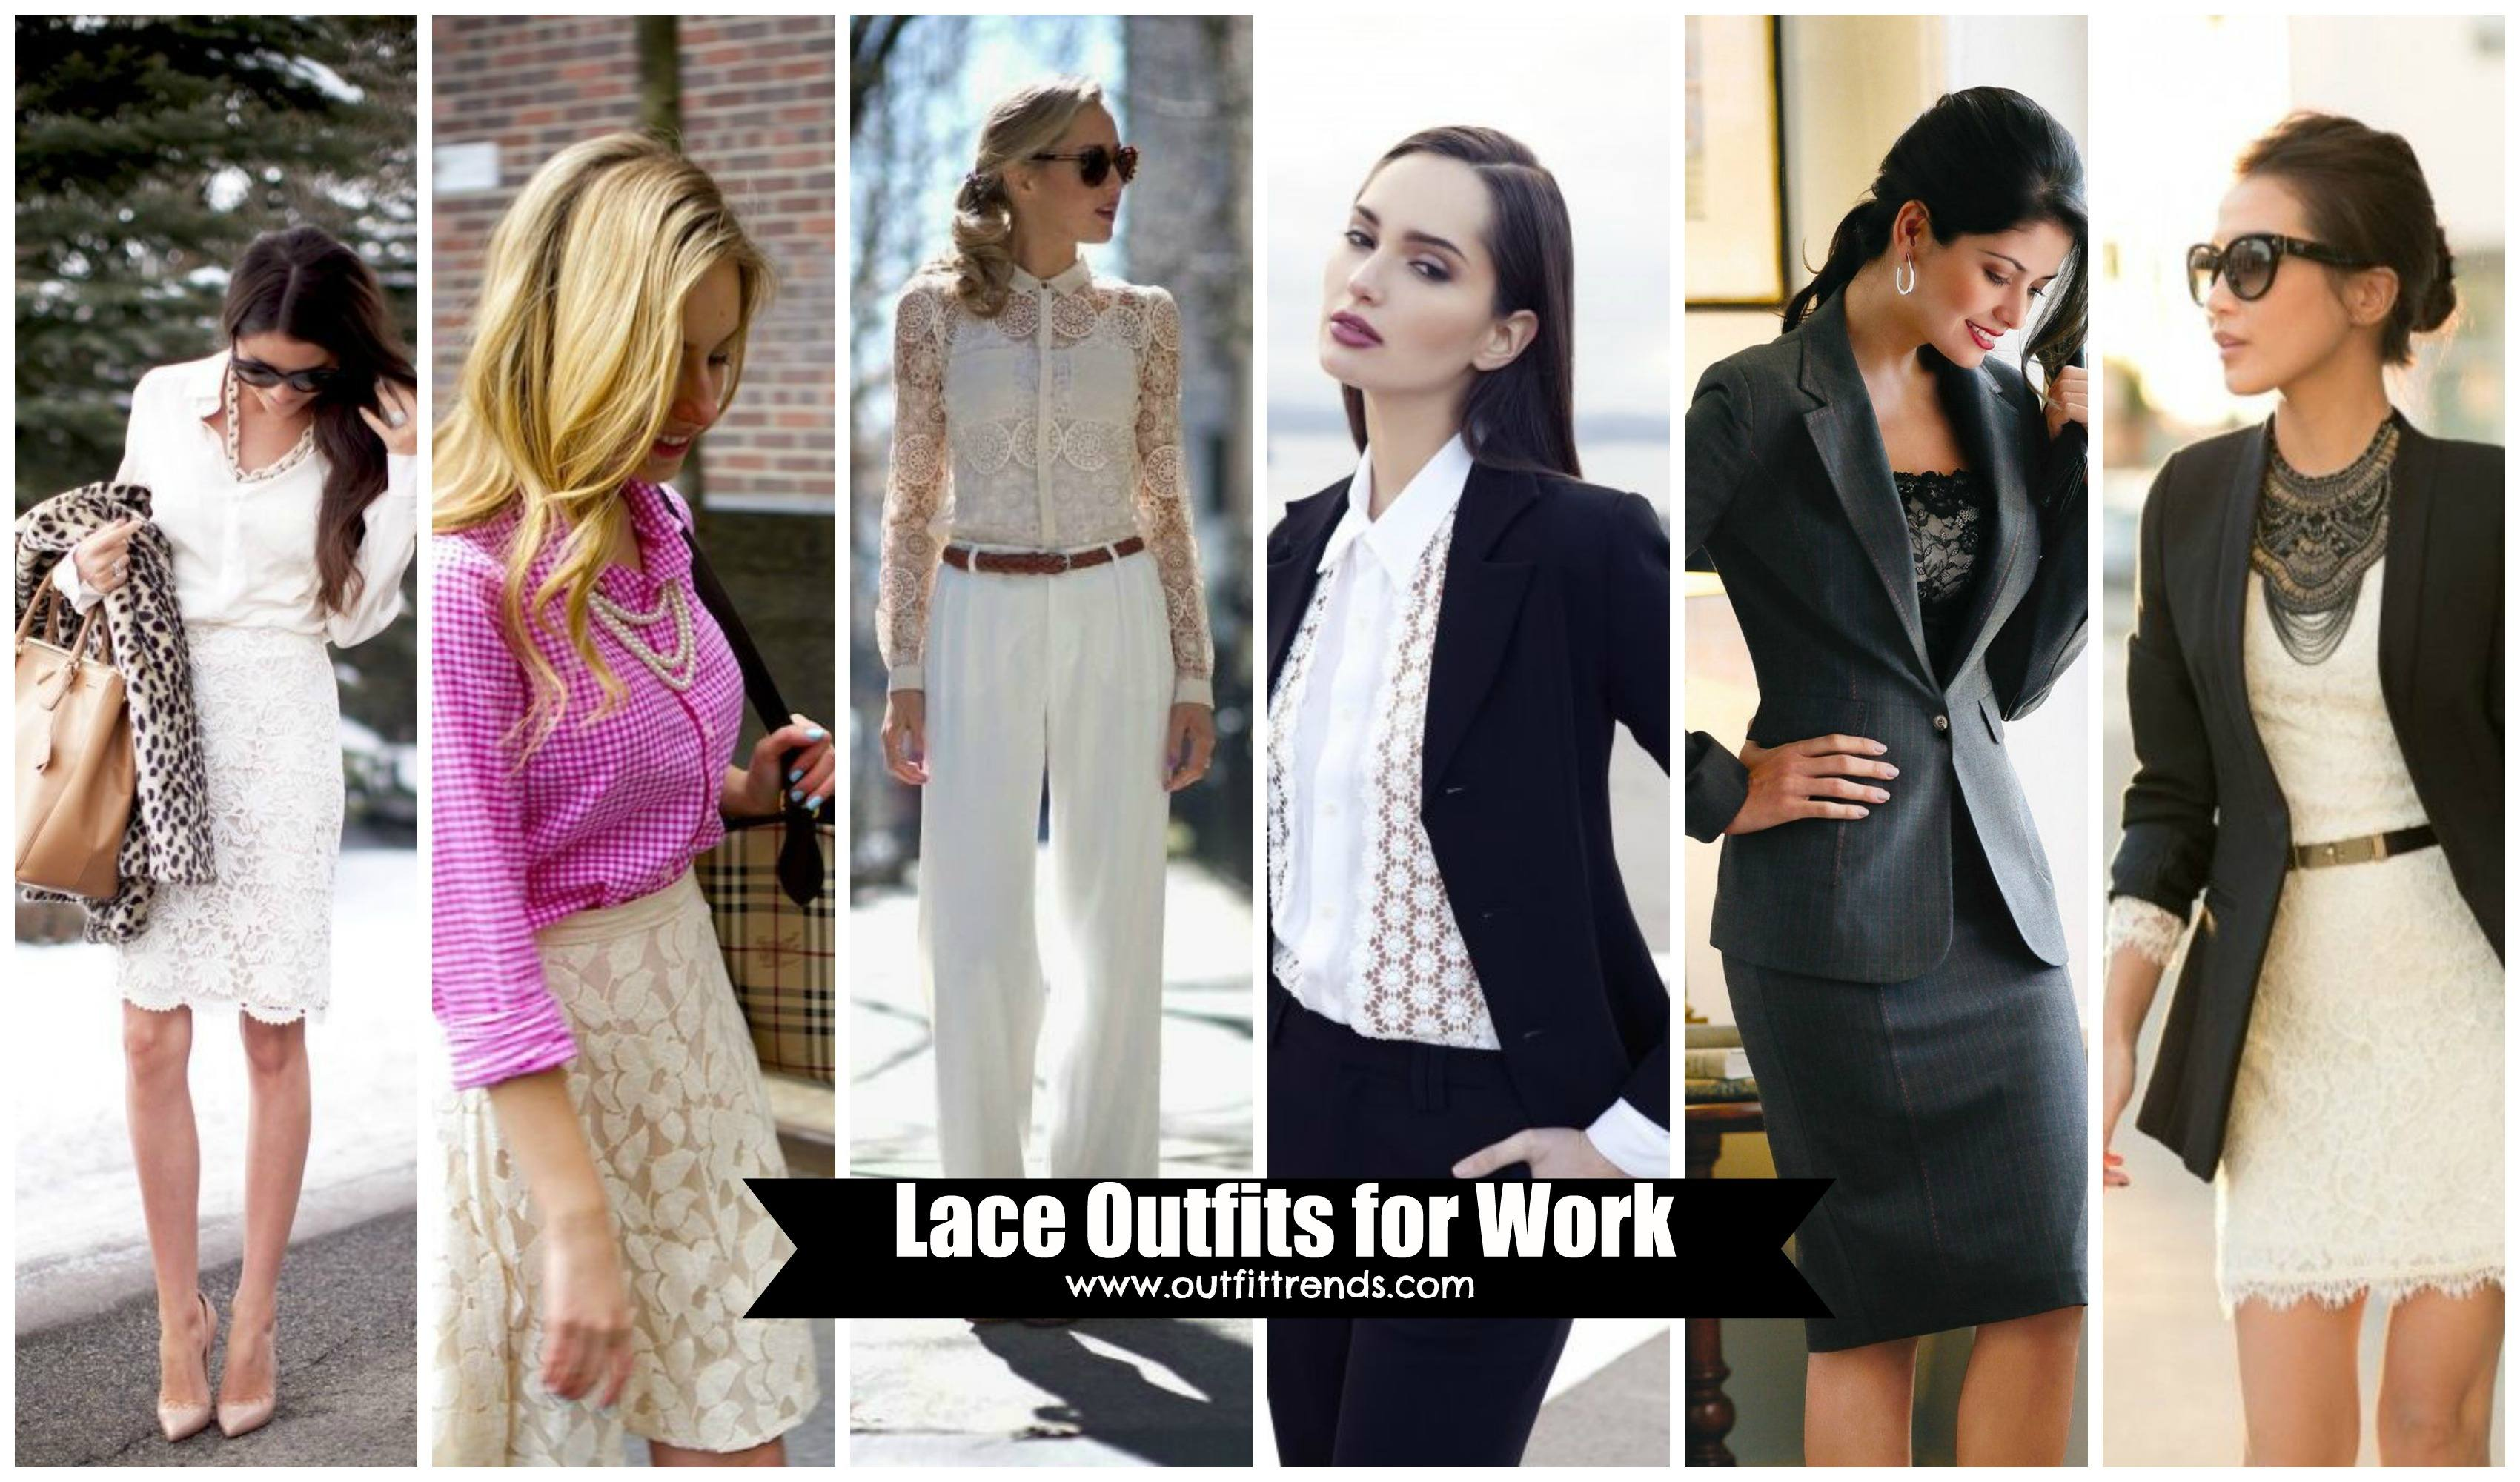 women lace outfits for work